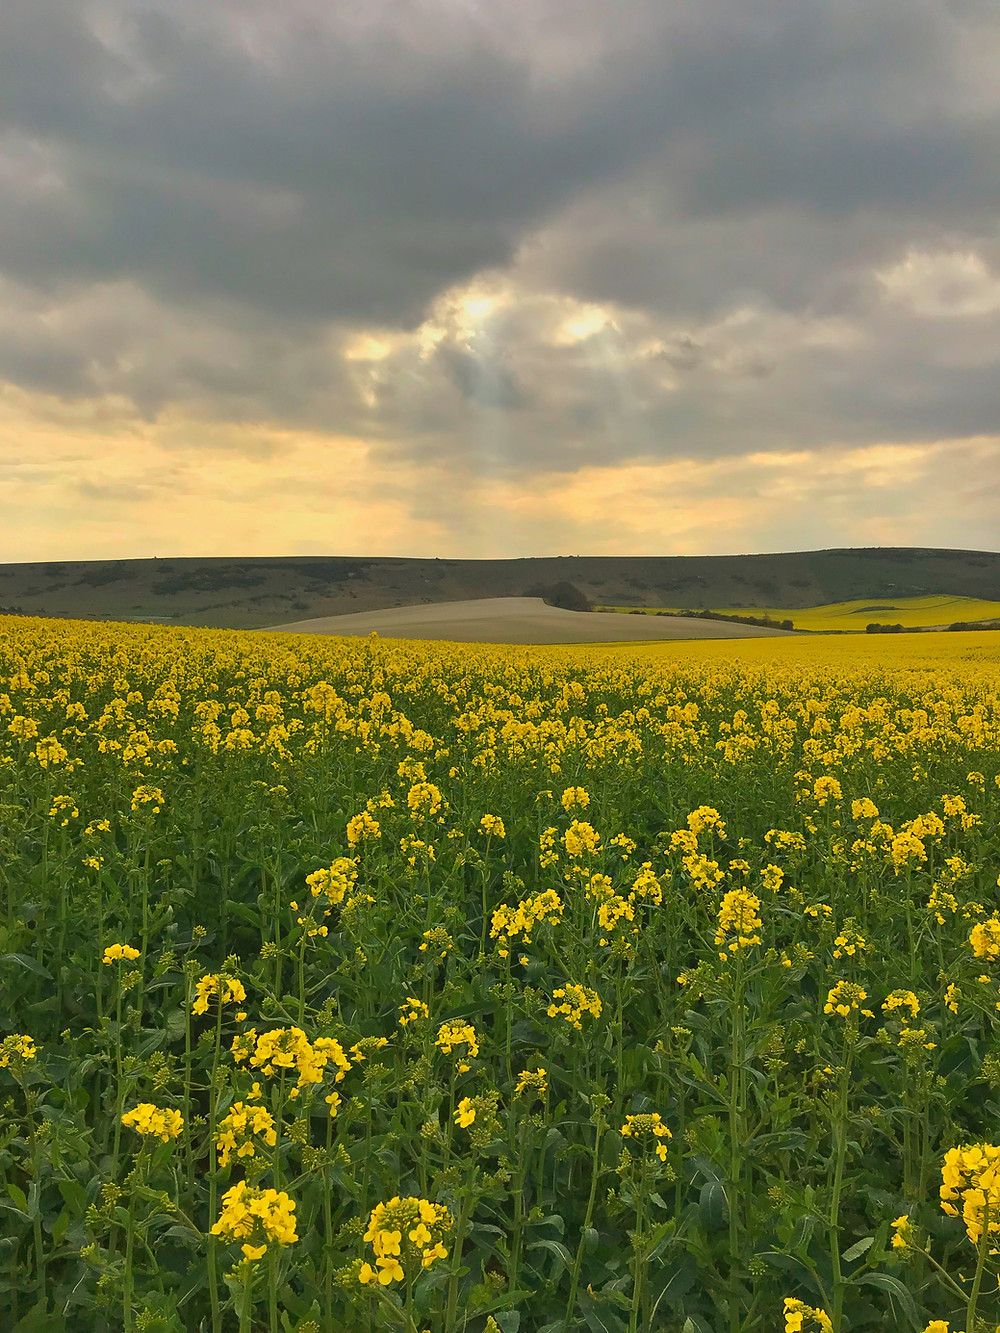 rapeseed field in South Downs